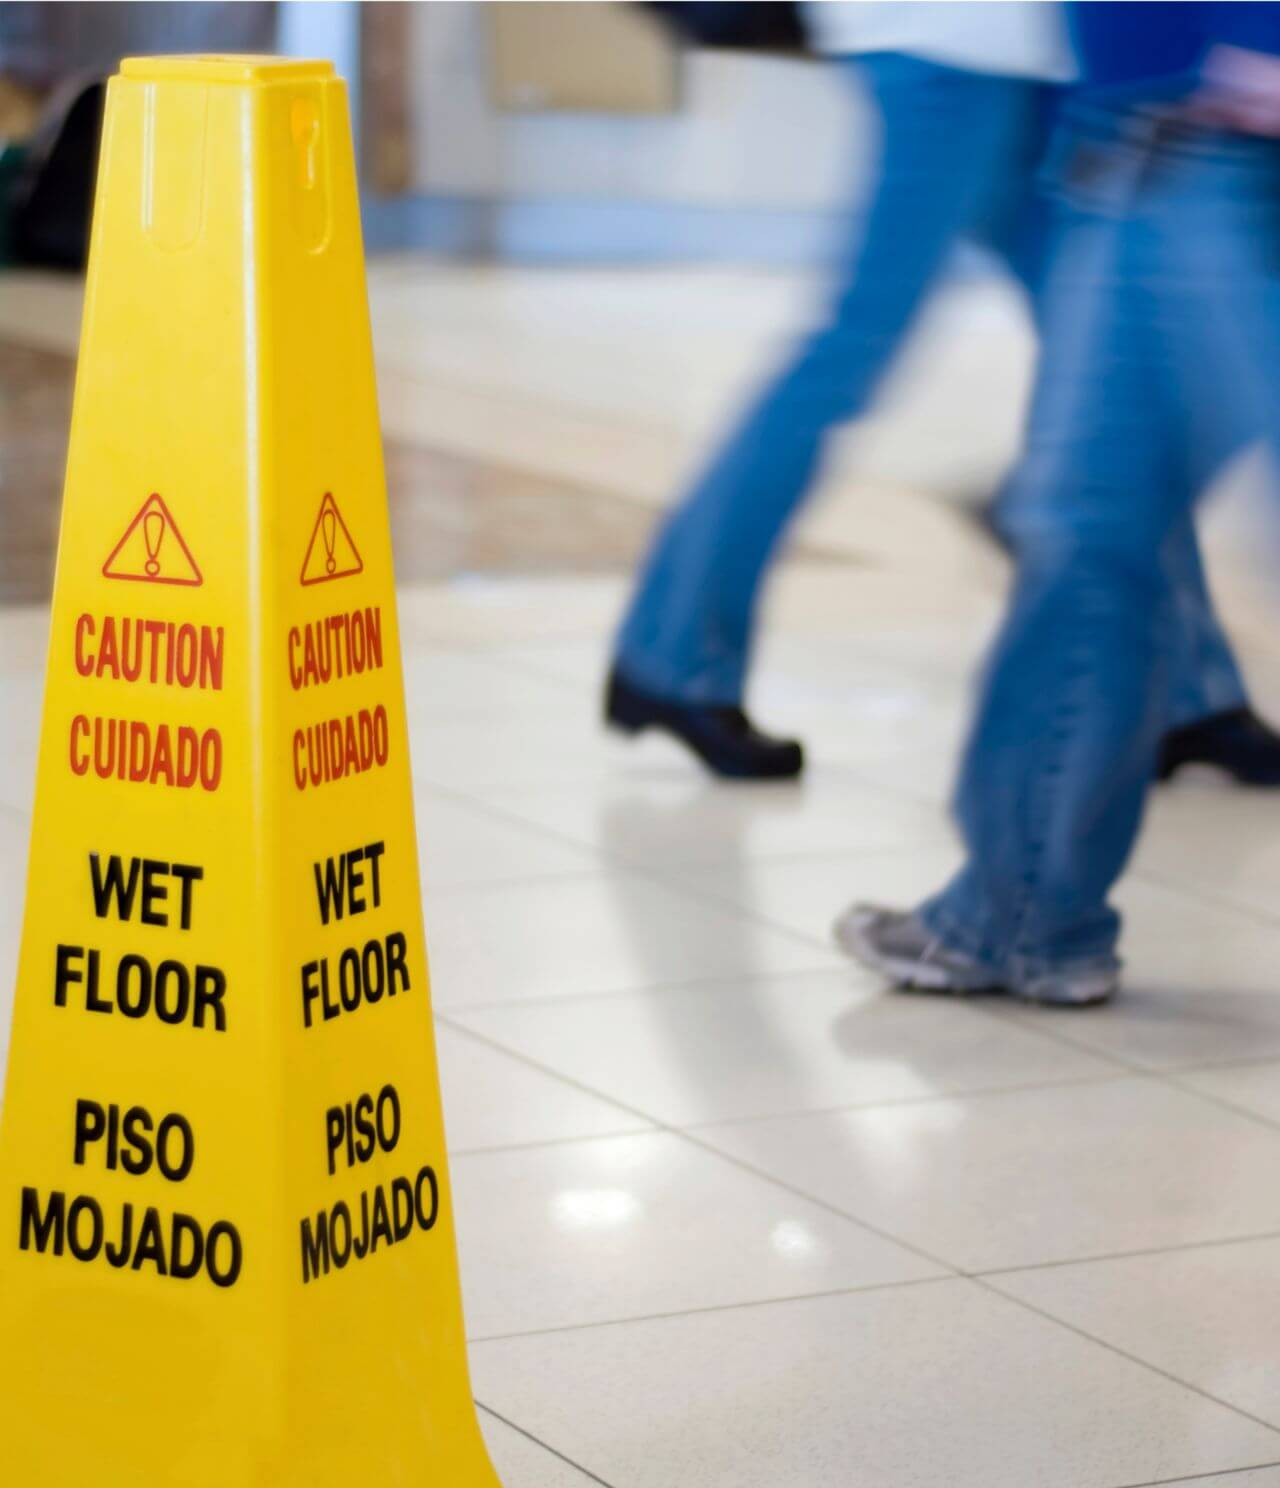 Premises Liability and Slip and Fall Lawyer The Ashmore Law Firm Dallas